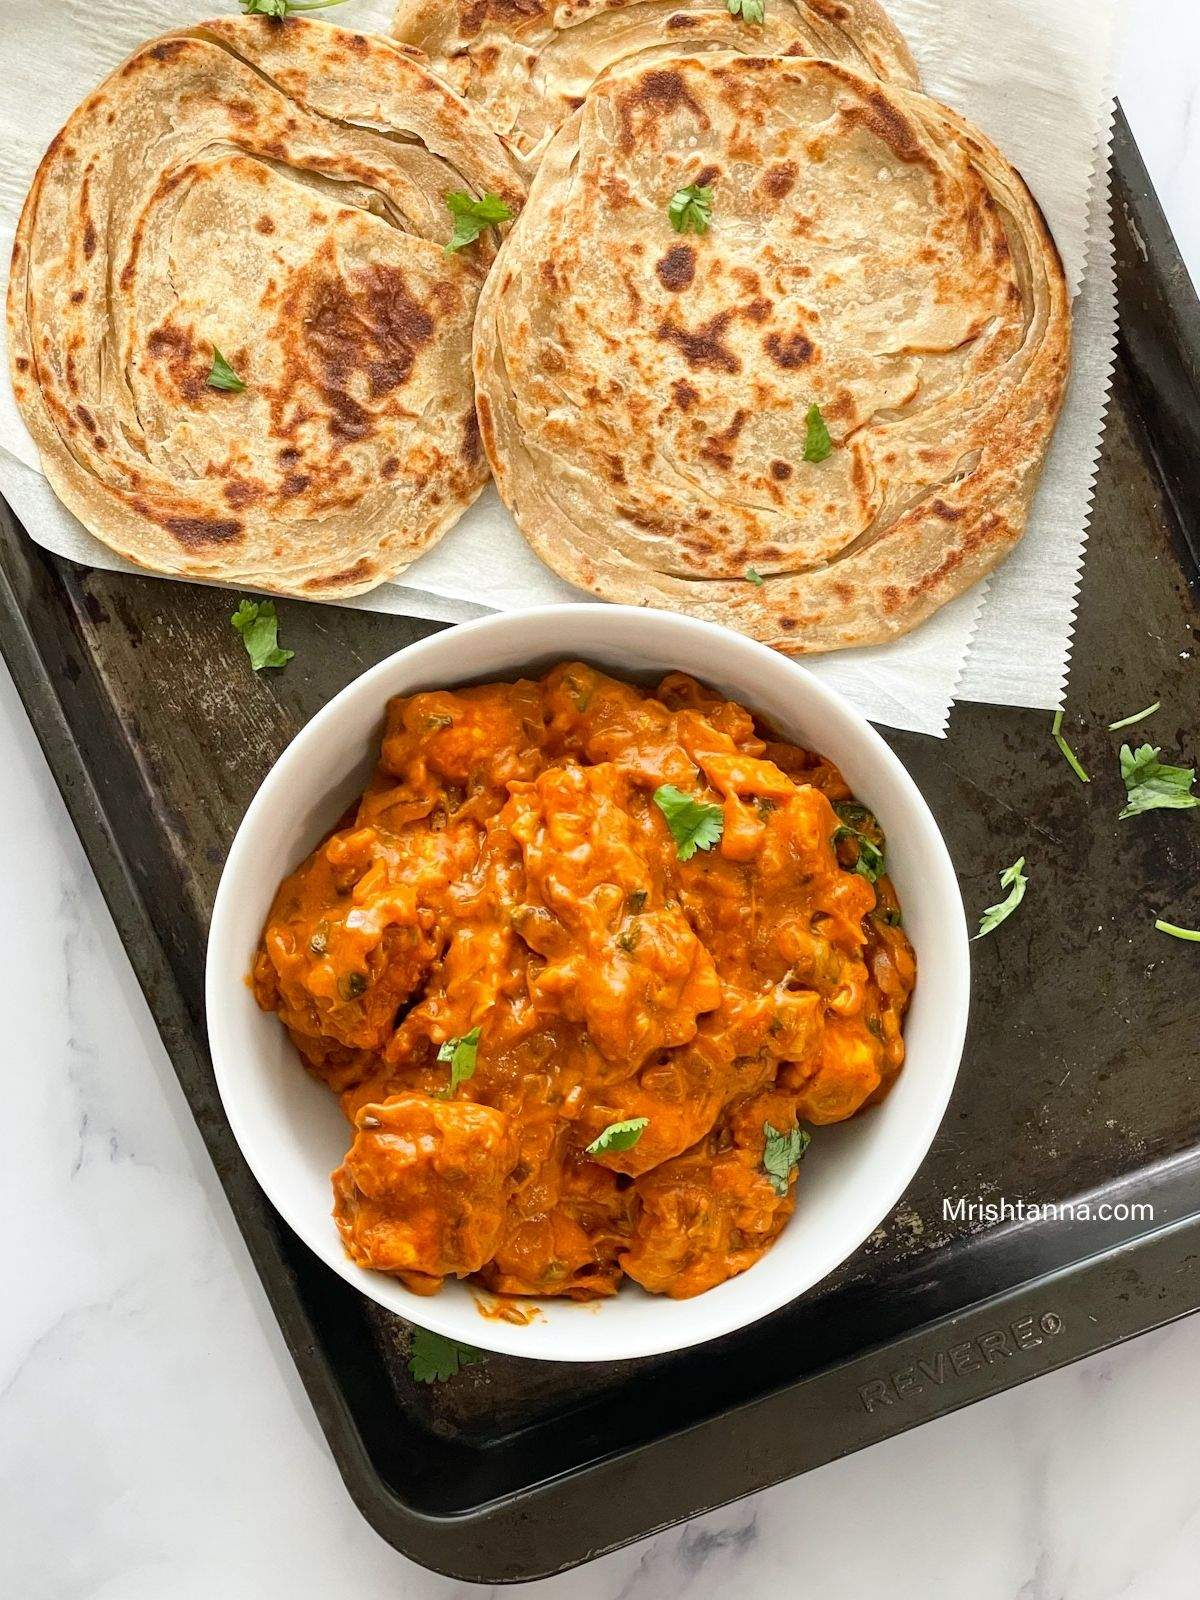 A bowl is filled with tofu butter chicken curry and placed on the baking tray along with paratha.